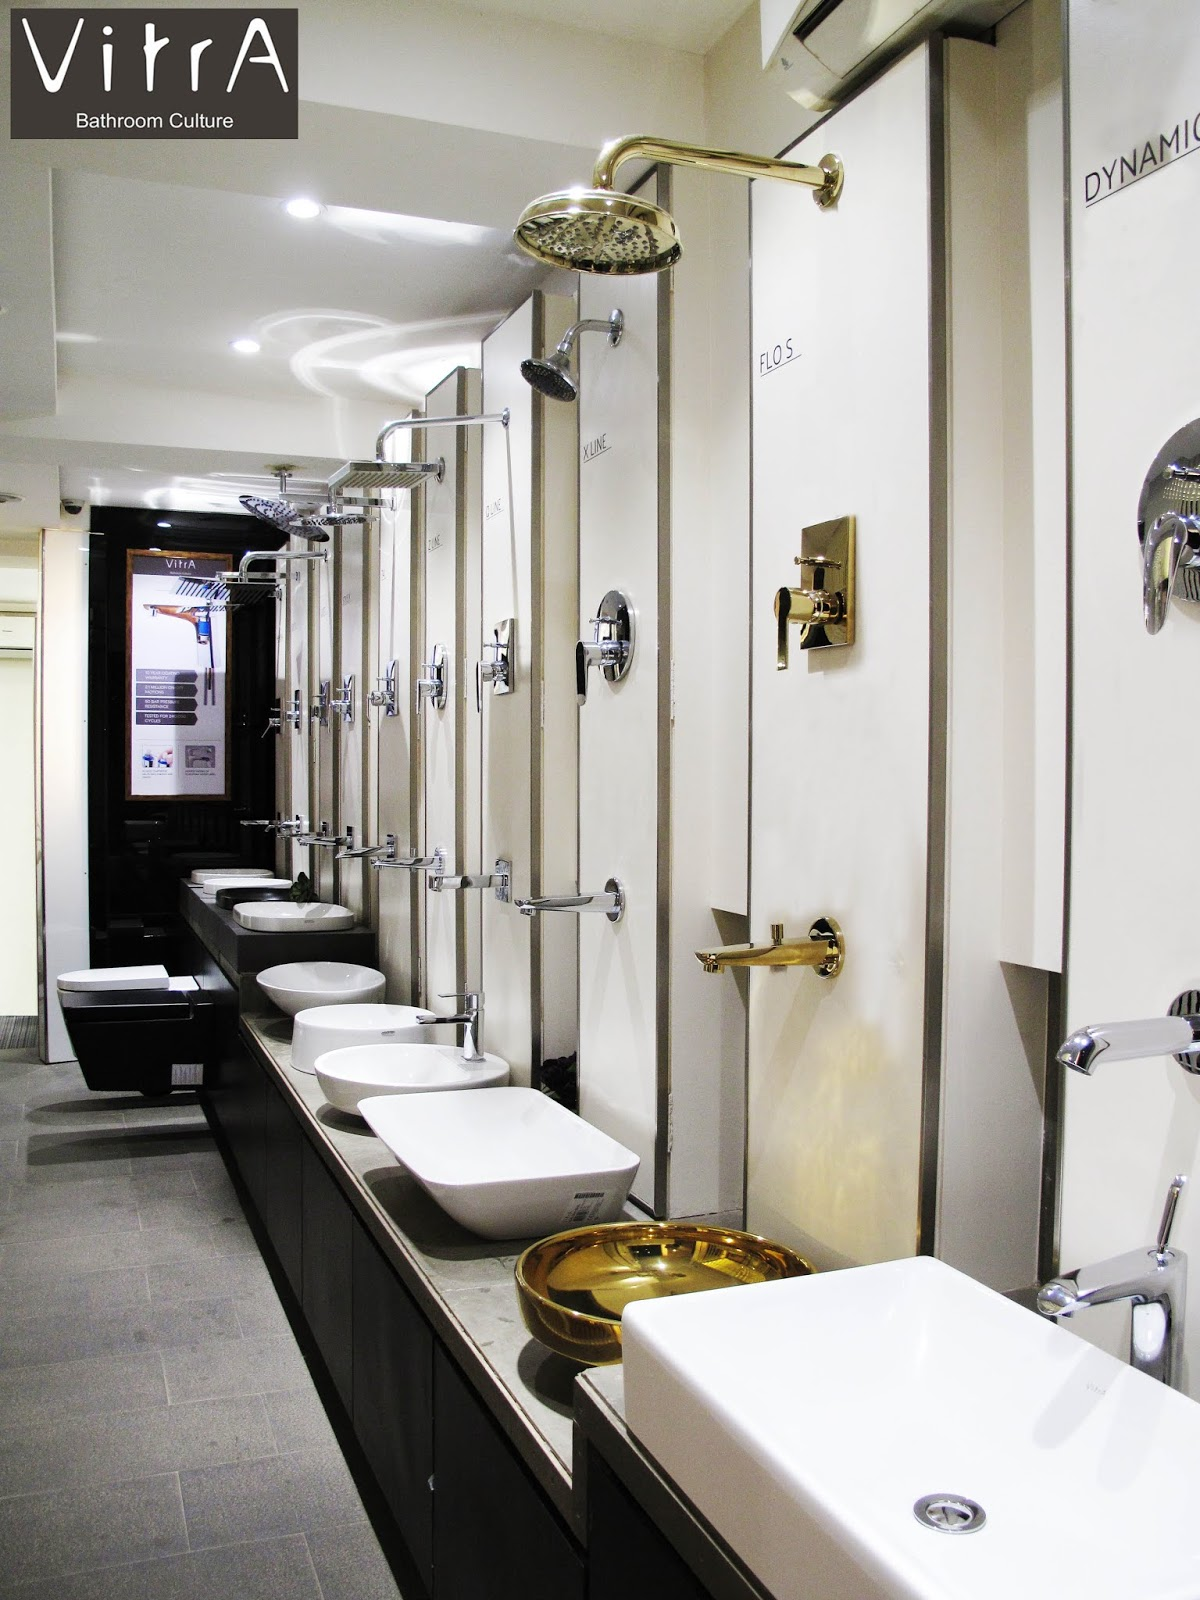 ... Interior Designers And Bathroom Consultants To Find Zestful Inspiration  In The Sheer Visual Treat Of The Dynamic Bathroom Collections Of  Internationally ...